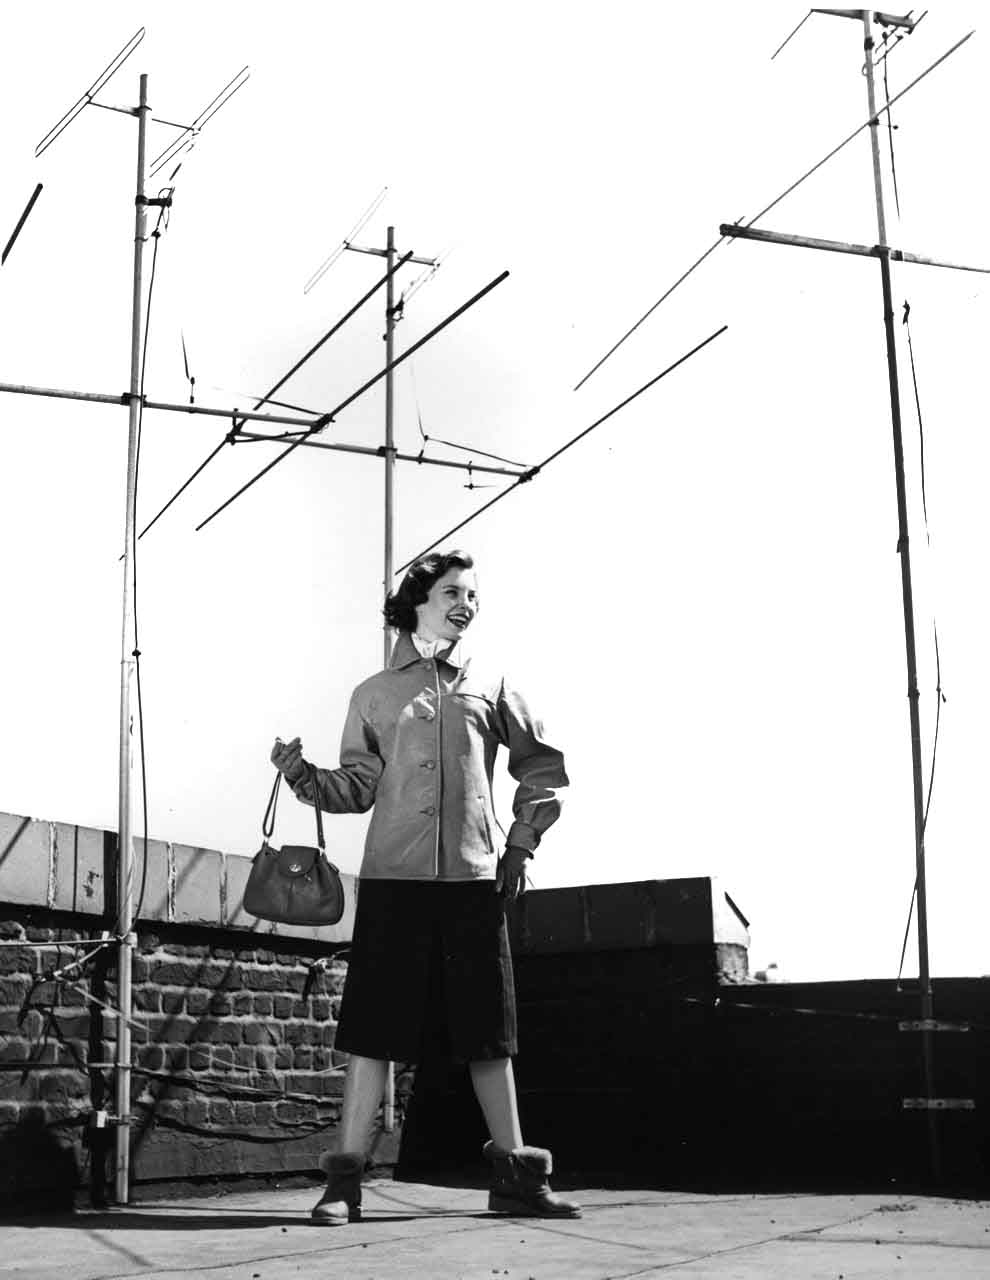 13_54_Model posing on a roof with antennas in the background_Dan Wynn Archive.jpg